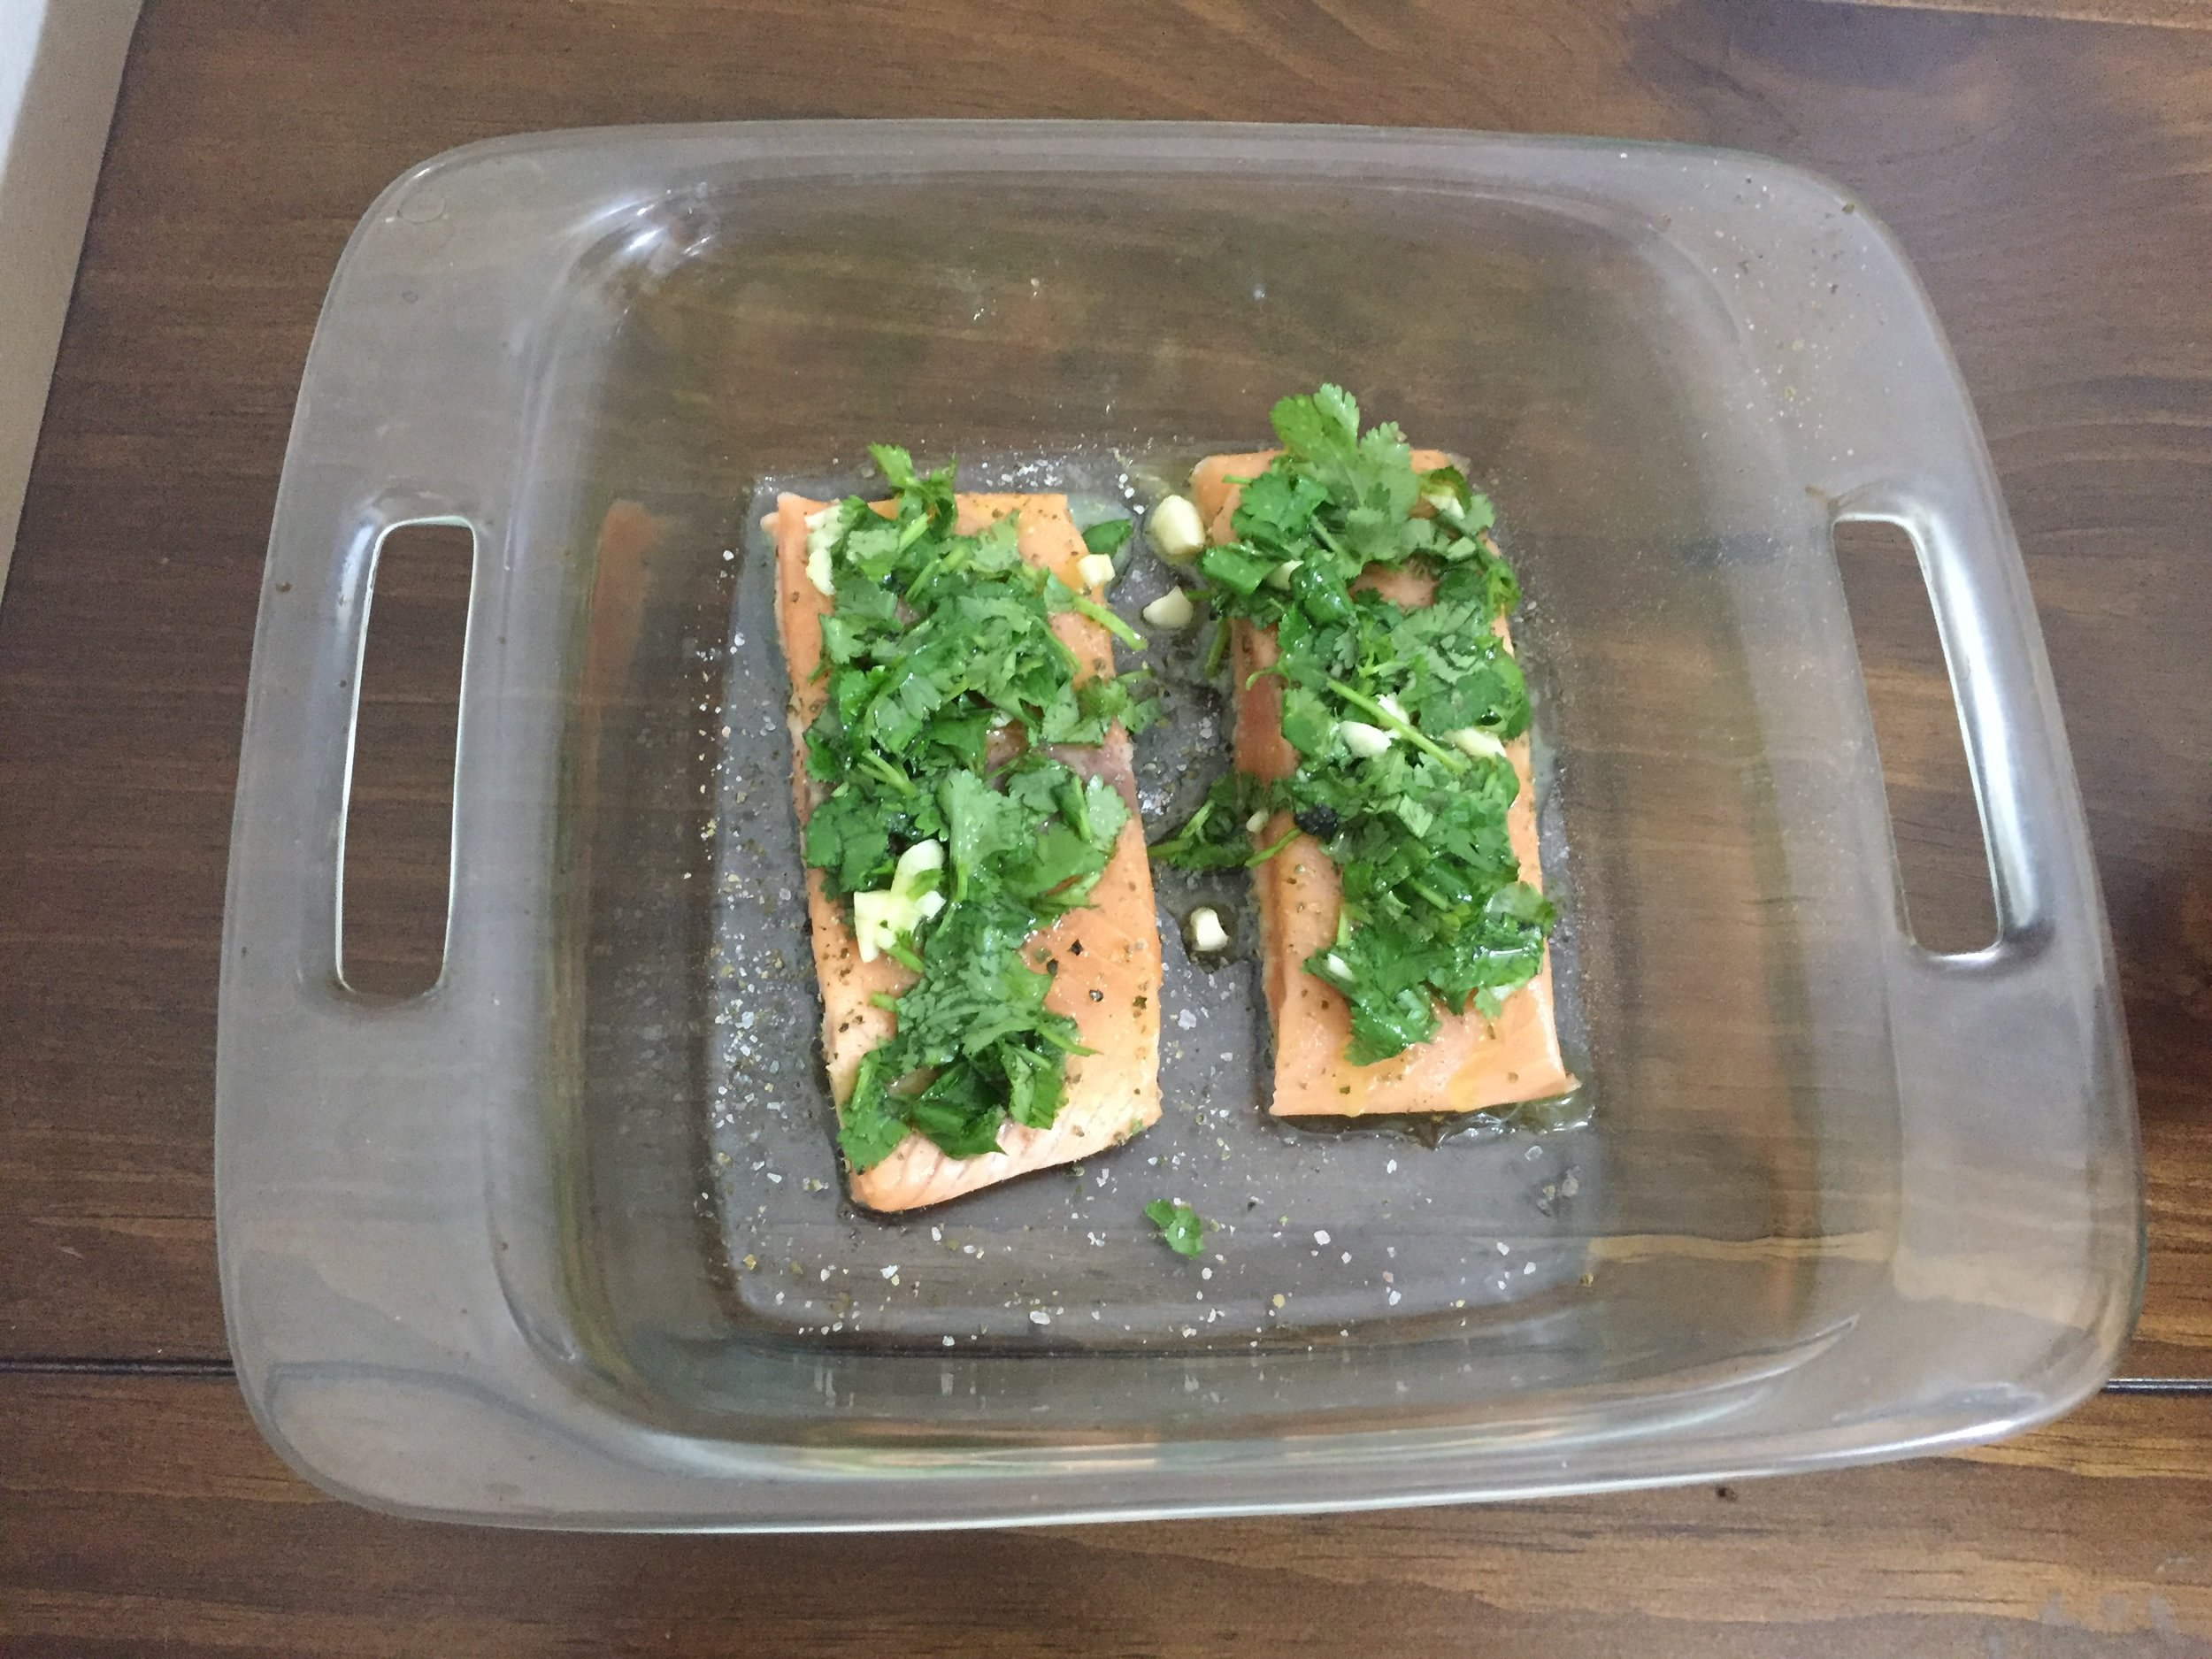 Place in the oven for 9-15 minutes to bake under high heat. *check at minutes 11-13 to determine oven strength.  Serve smiling and exciting about future Omega 3's!